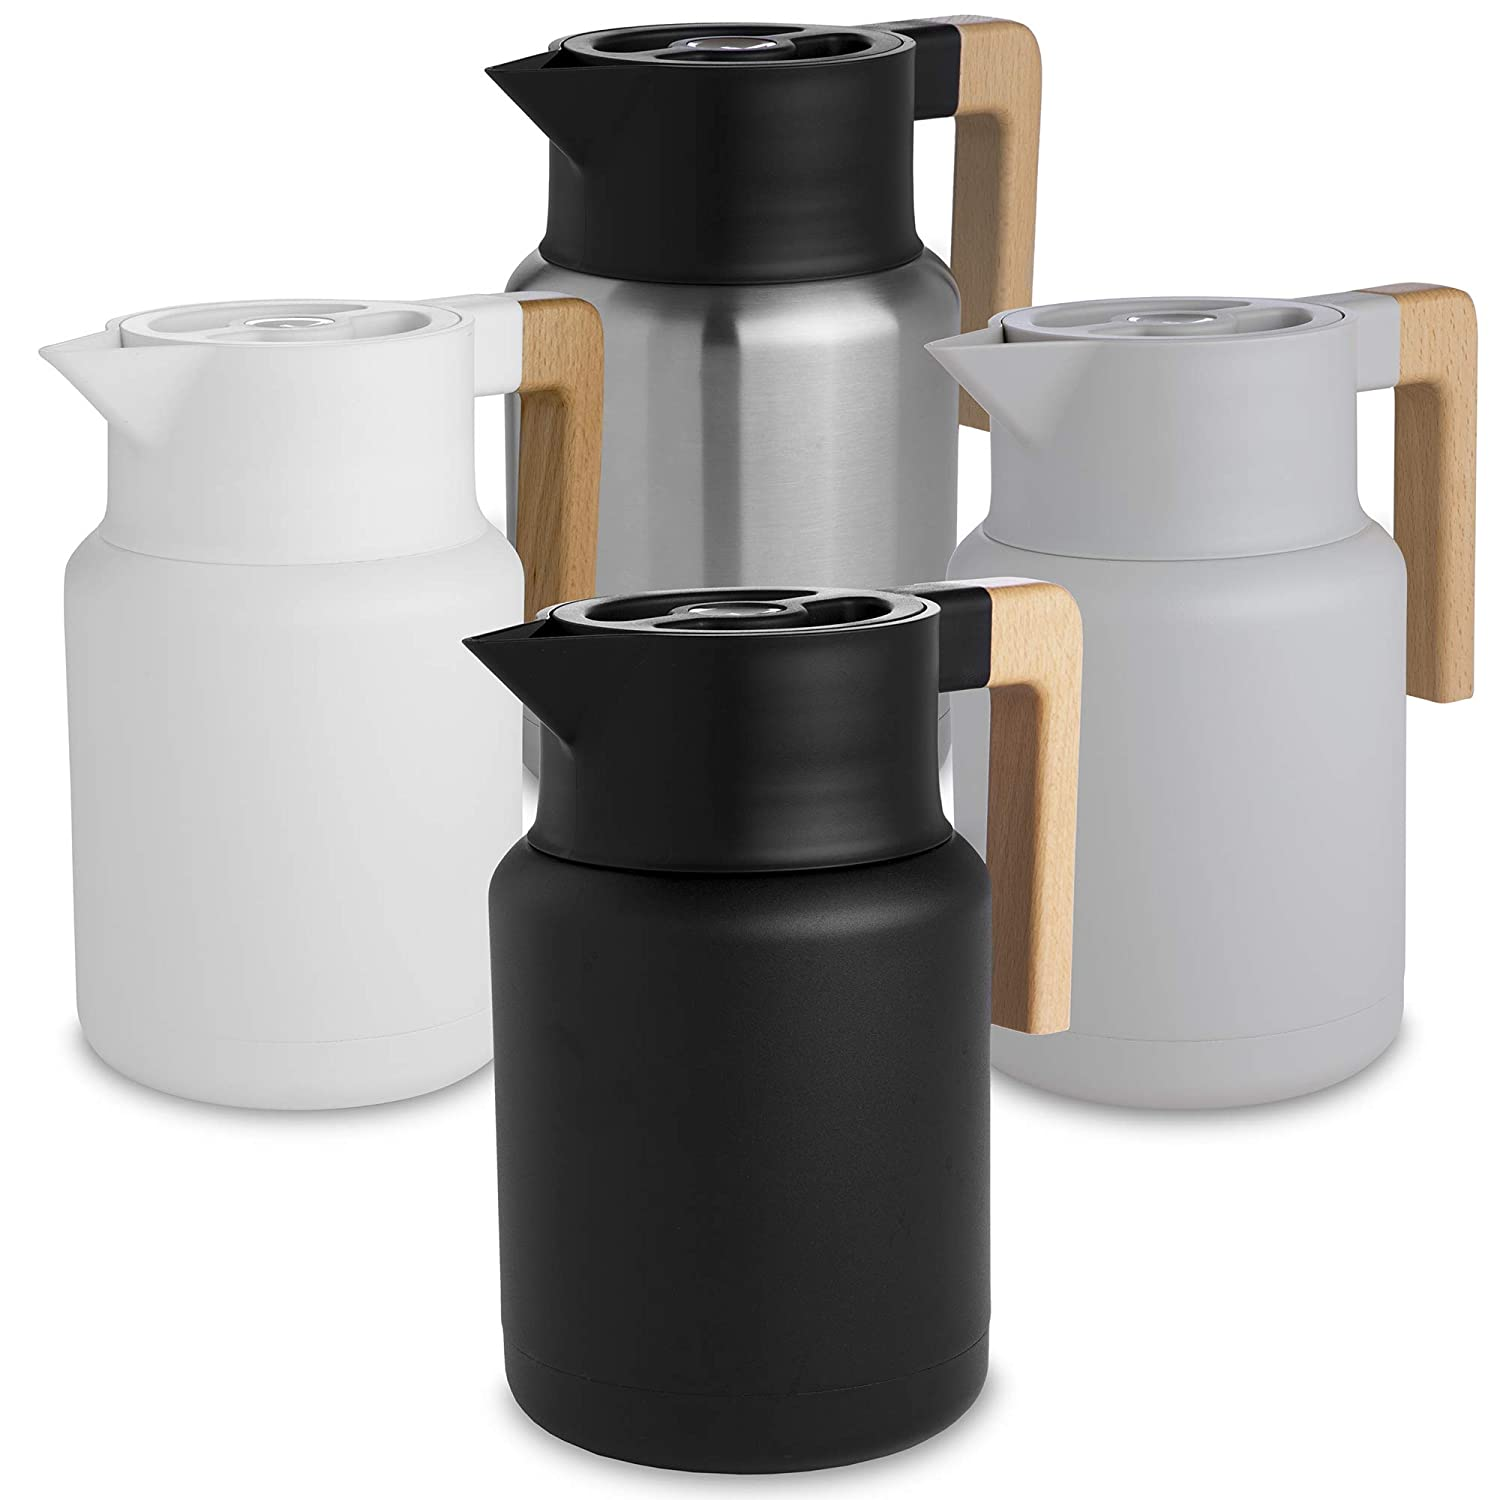 Stainless Steel Double Walled Thermal Pots For Coffee and Teas by Hastings Collective Black 50 Fl Oz. Large Thermal Coffee Carafe Vacuum Carafes With Removable Tea Infuser and Strainer